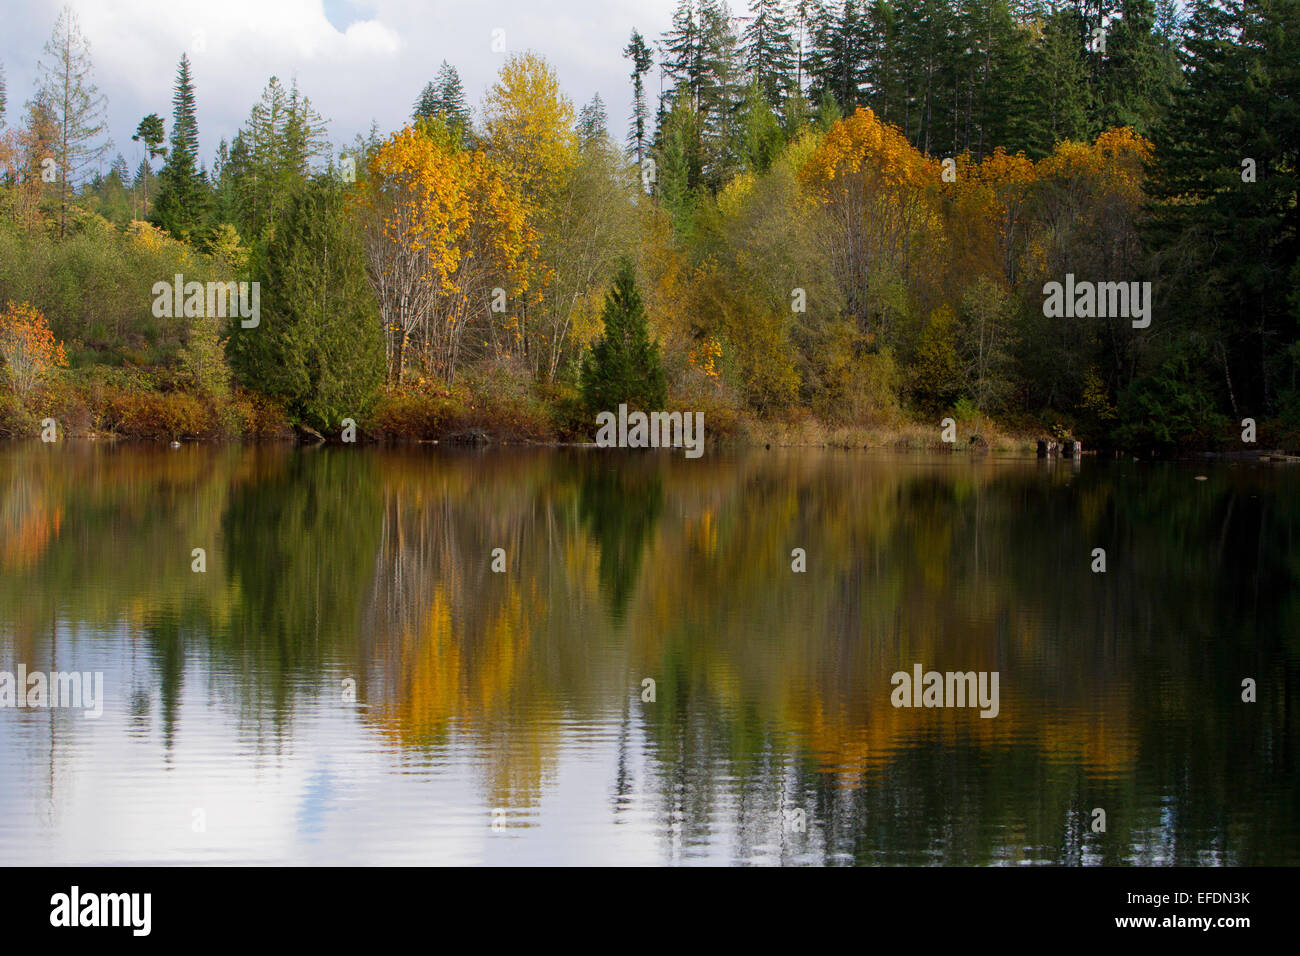 Autumn view of trees with reflections across lake near Robertson Creek Hatchery, Port Alberni, Vancouver Island, - Stock Image